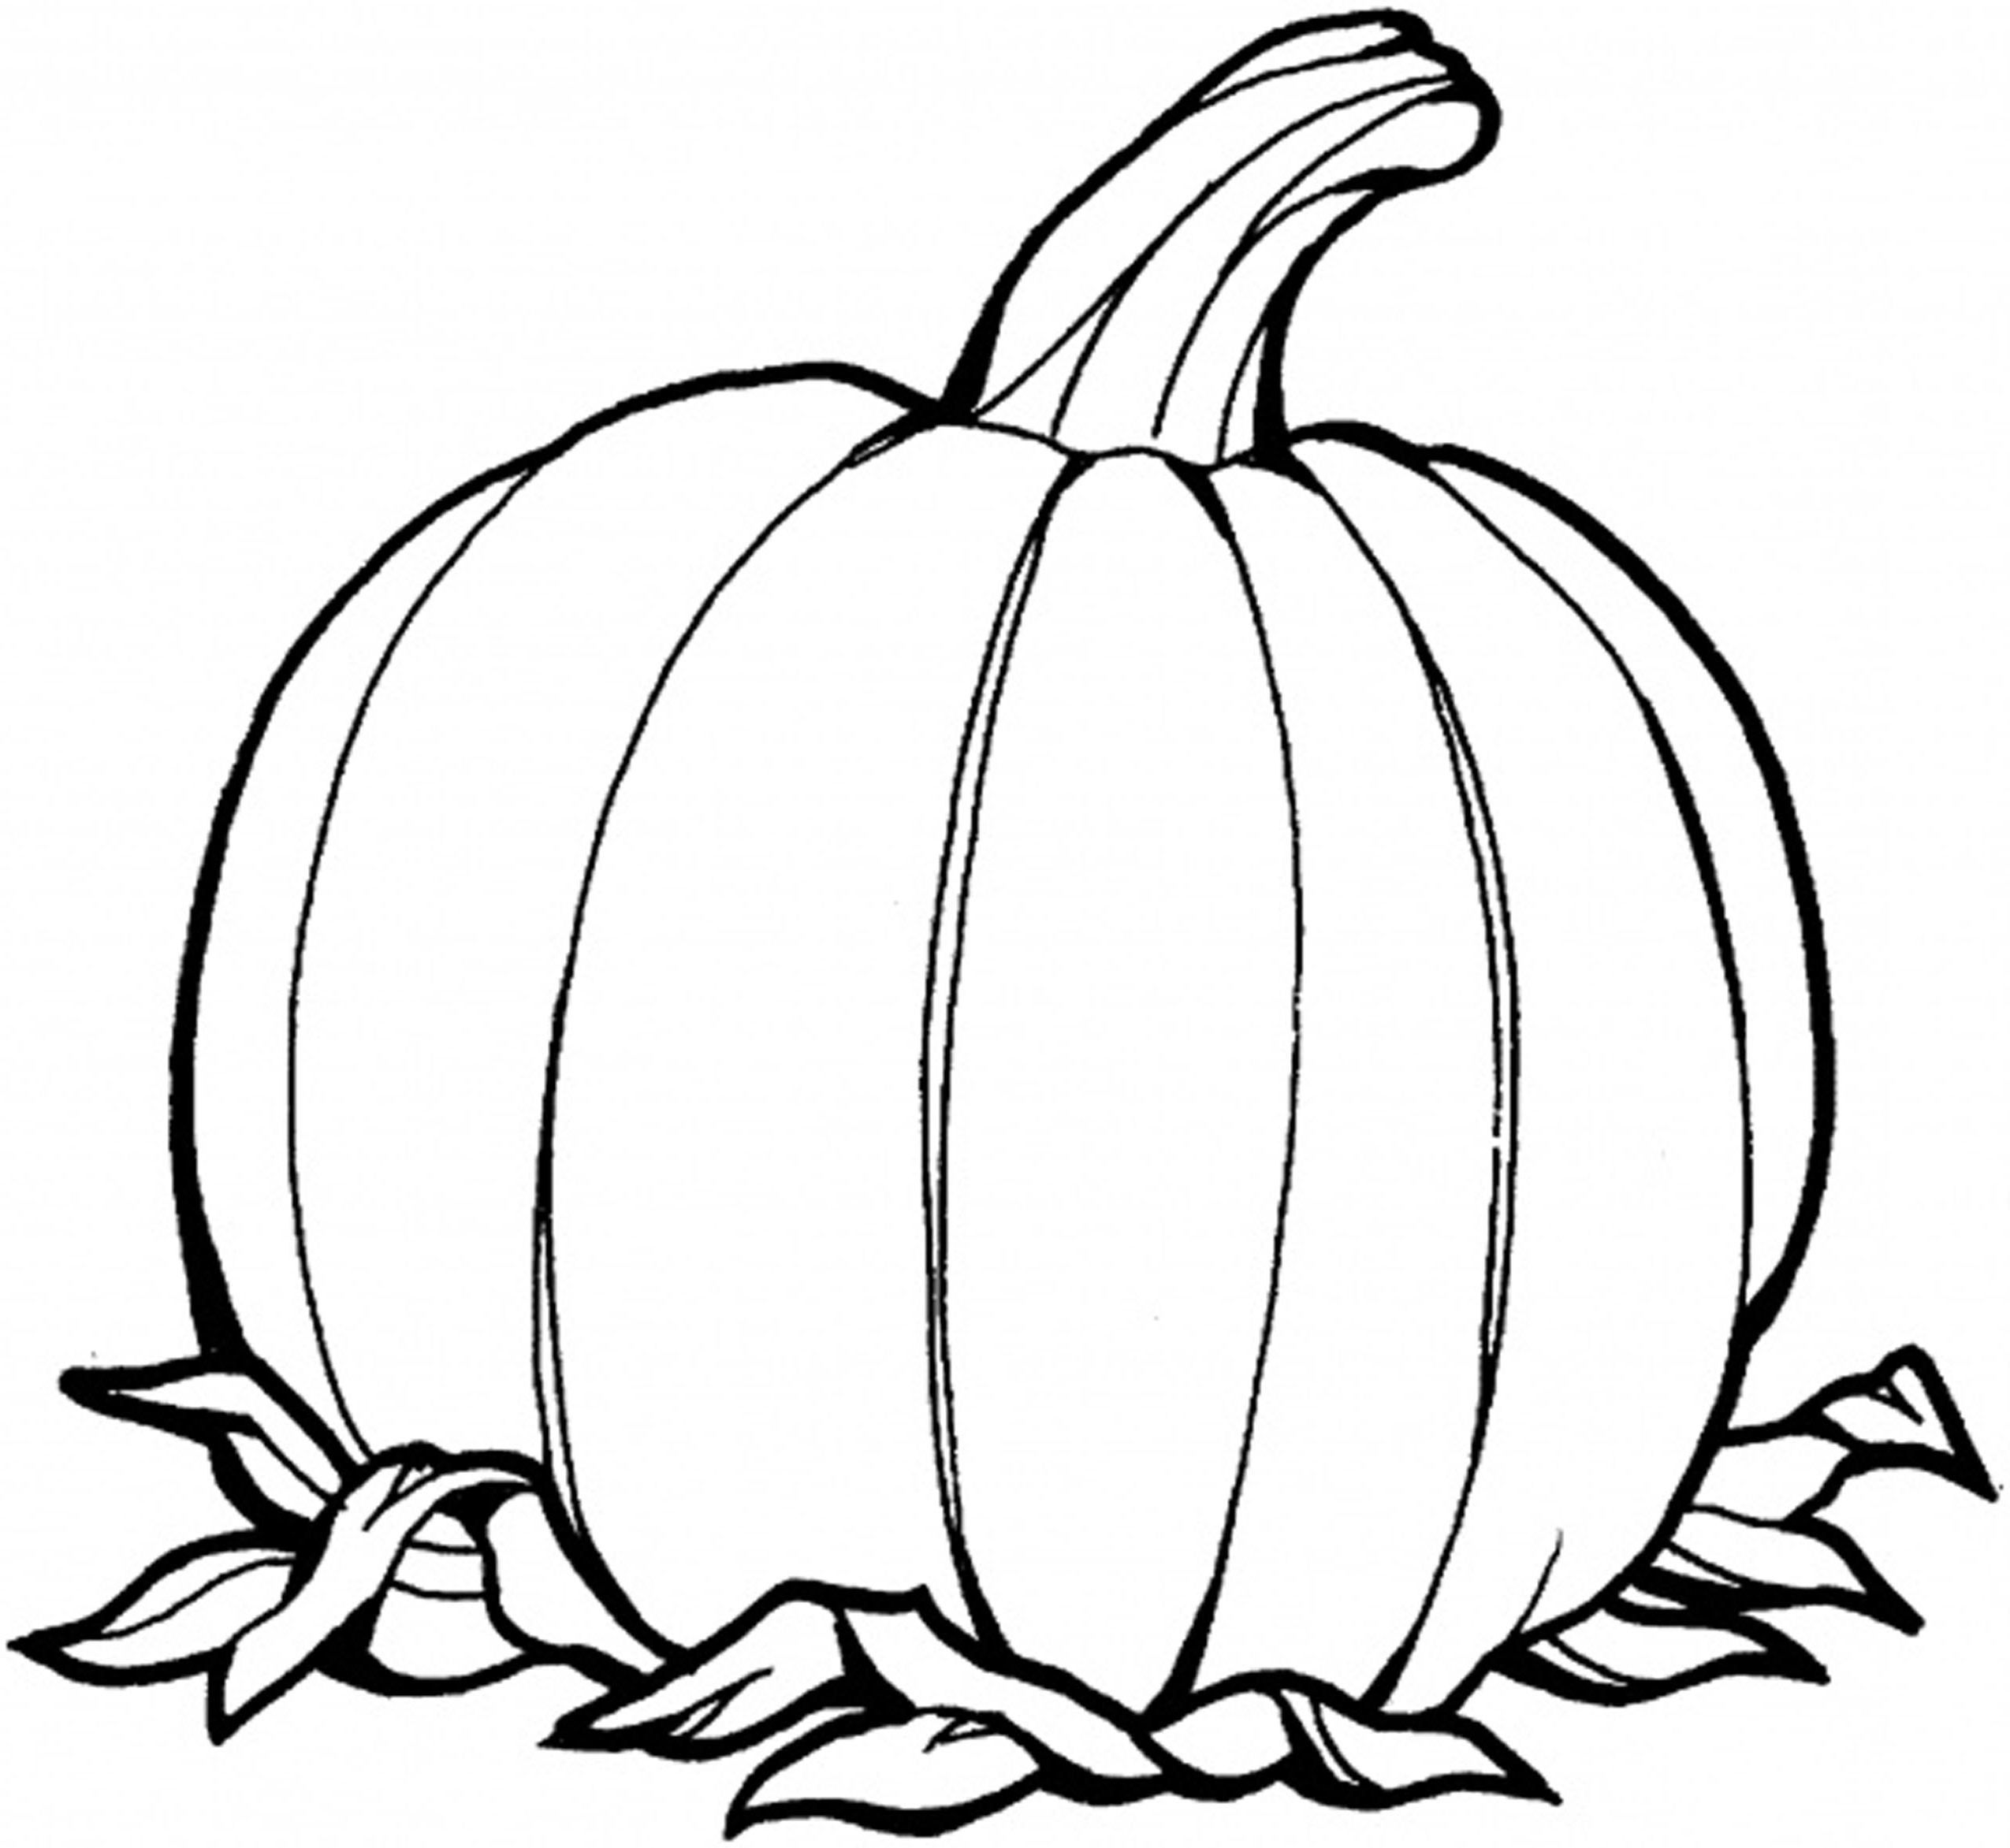 Pumpkin coloring pages for kids - Christian Pumpkin Coloring Pages Printable